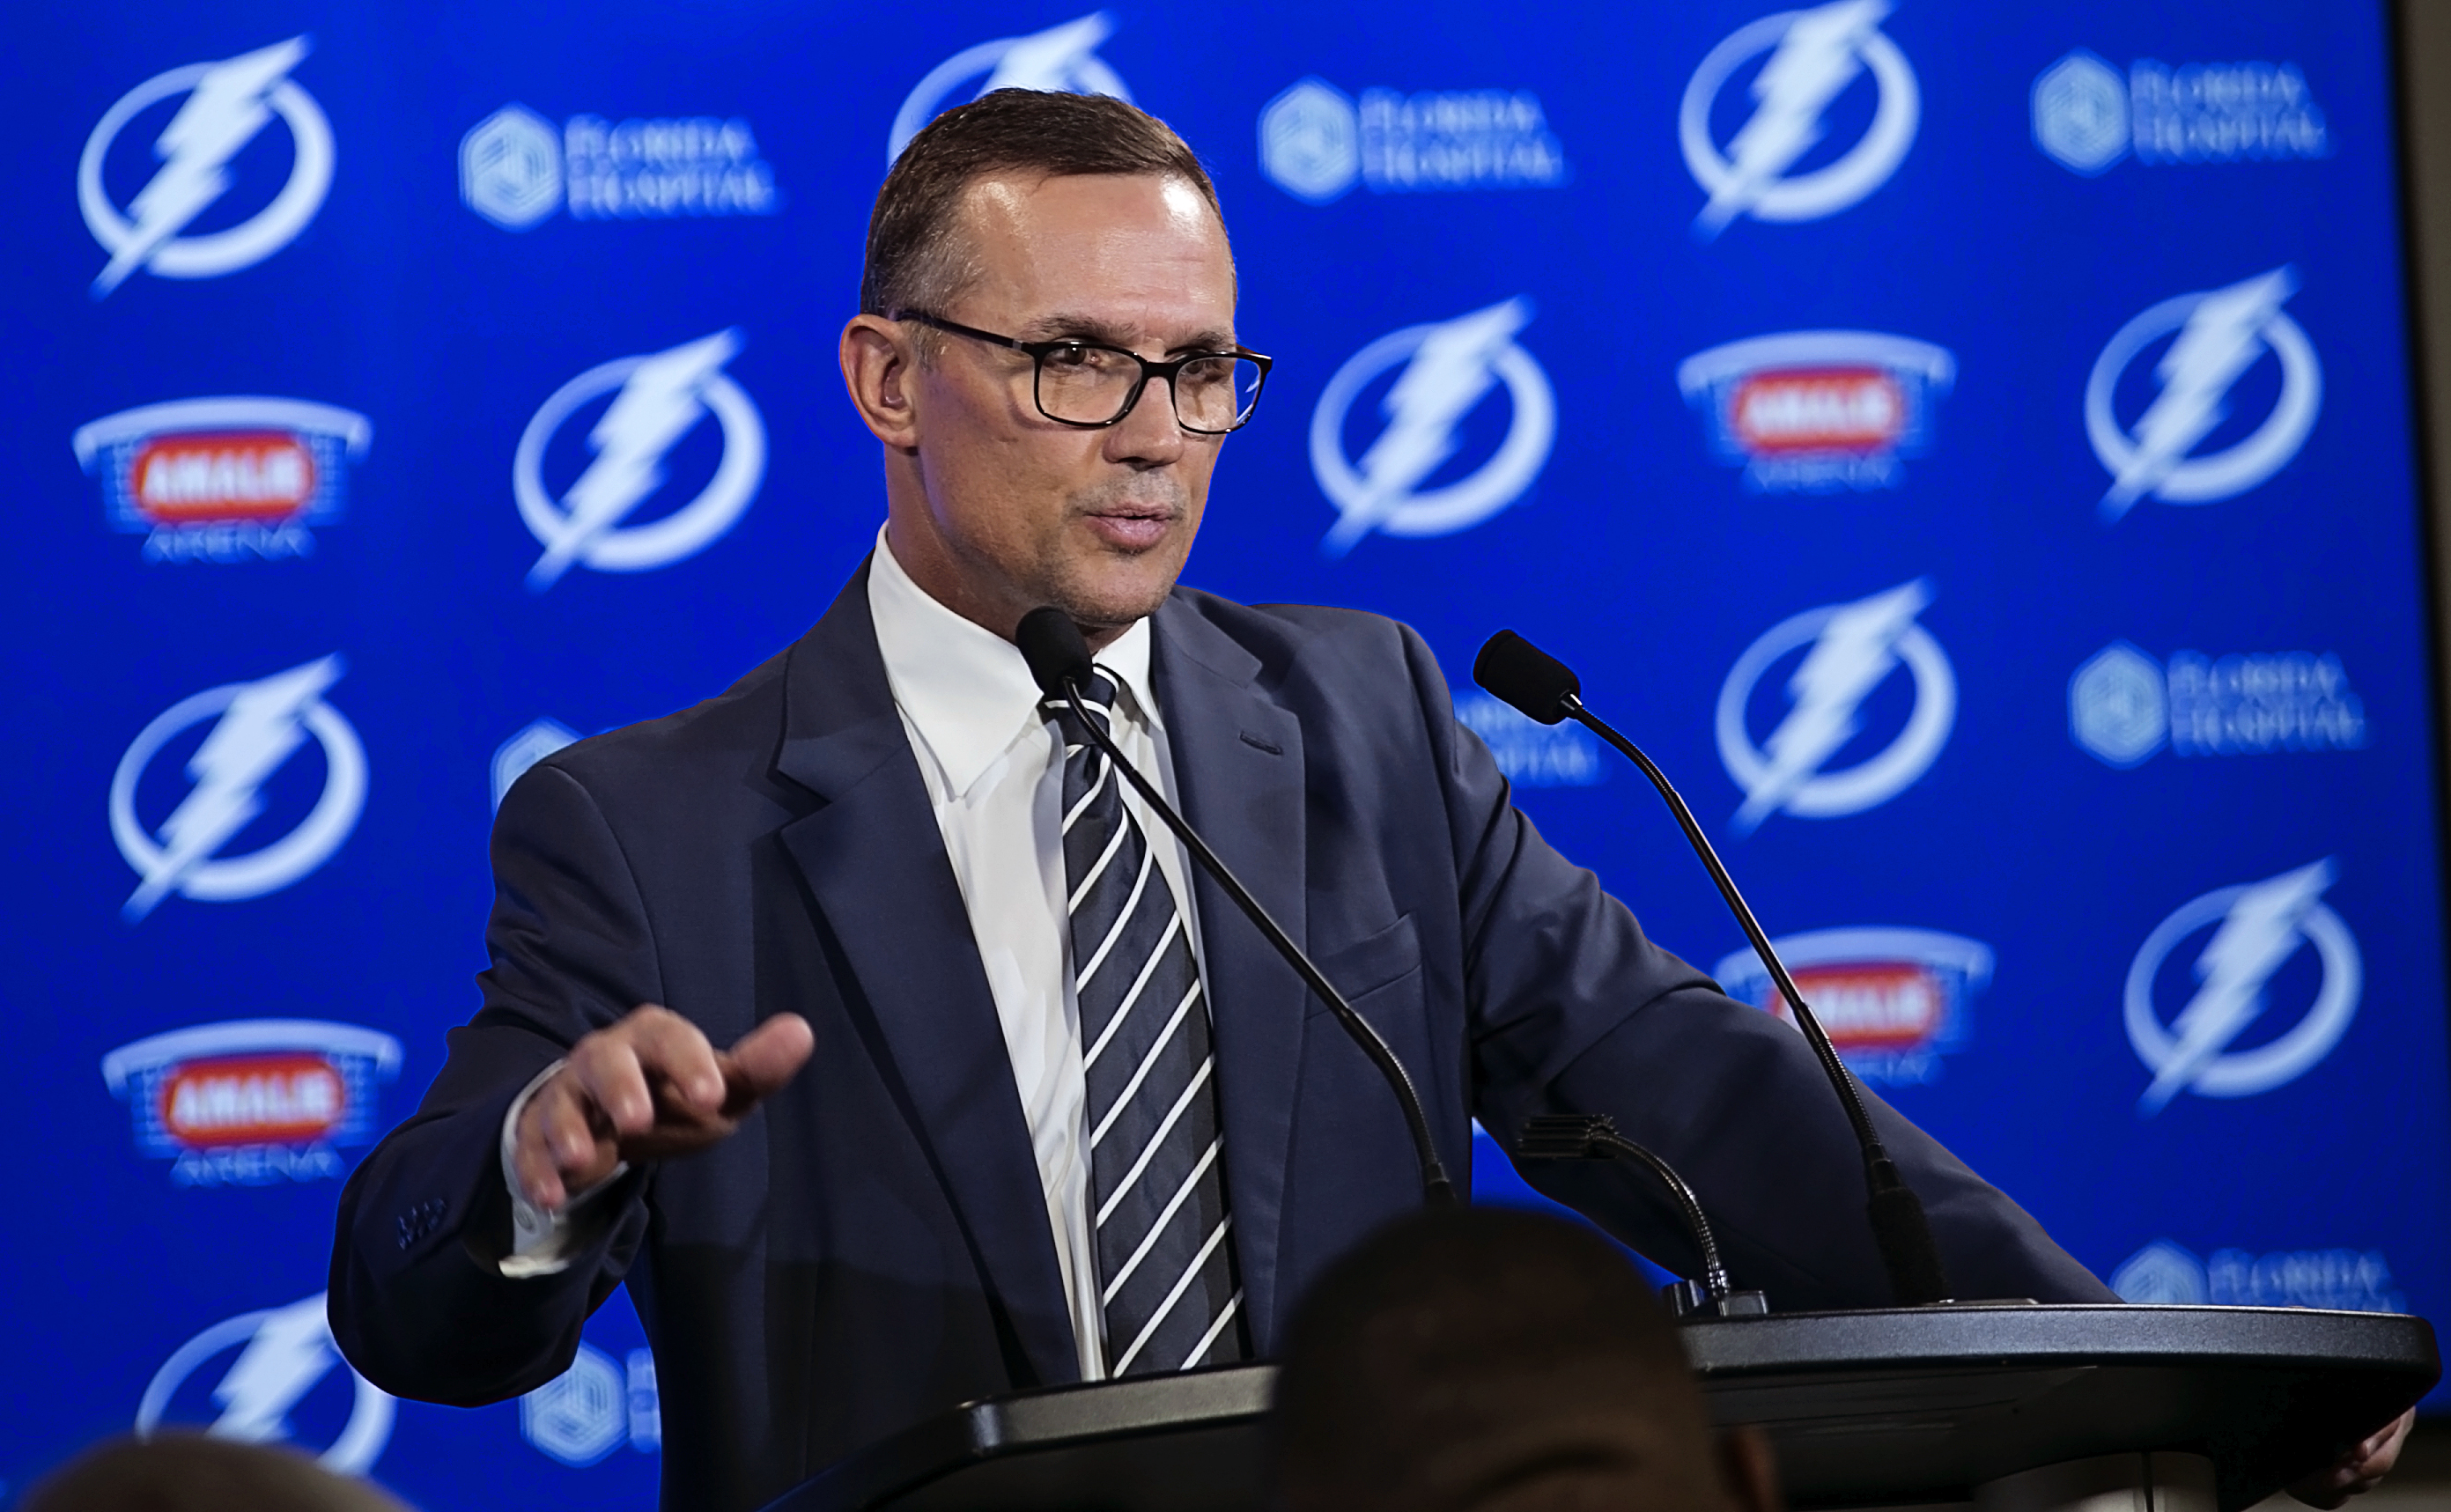 Yzerman made a deal that should help the Bolts./CARMEN MANDATO